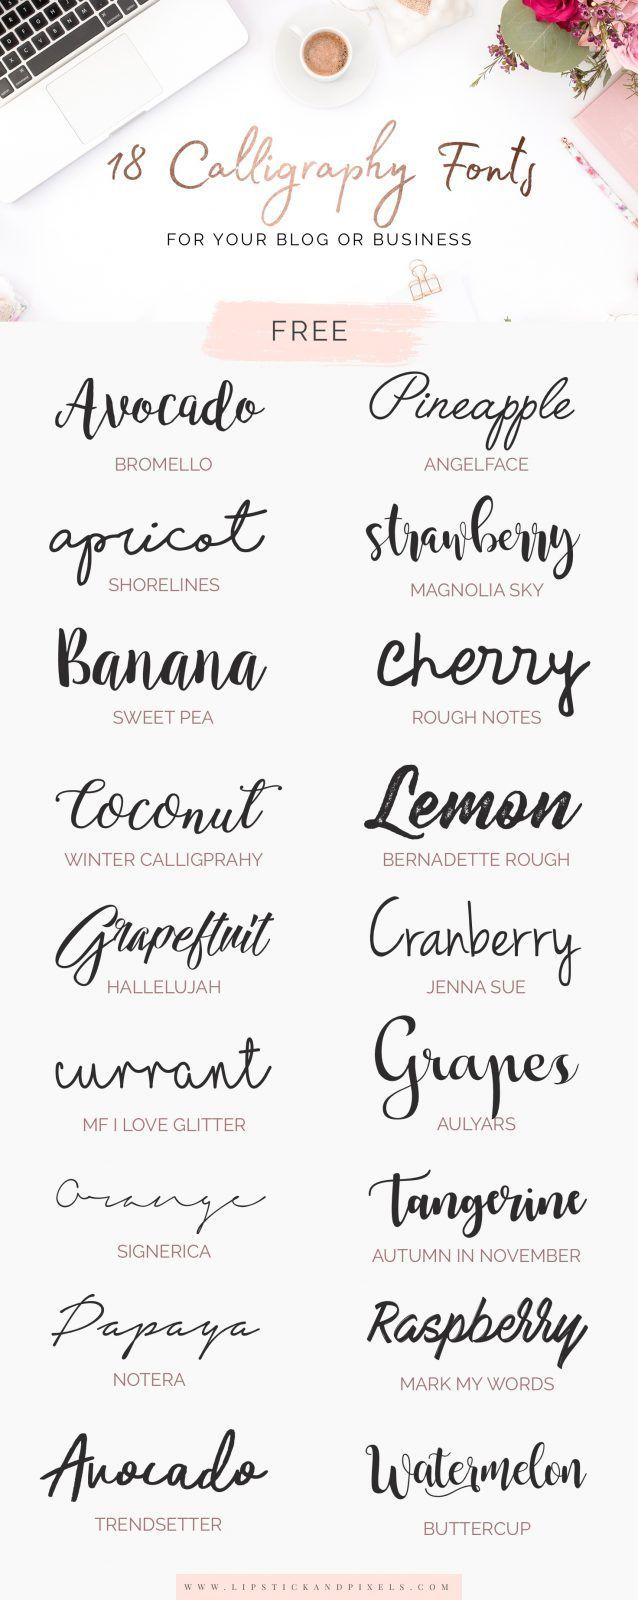 18 free calligraphy fonts for your blog or business